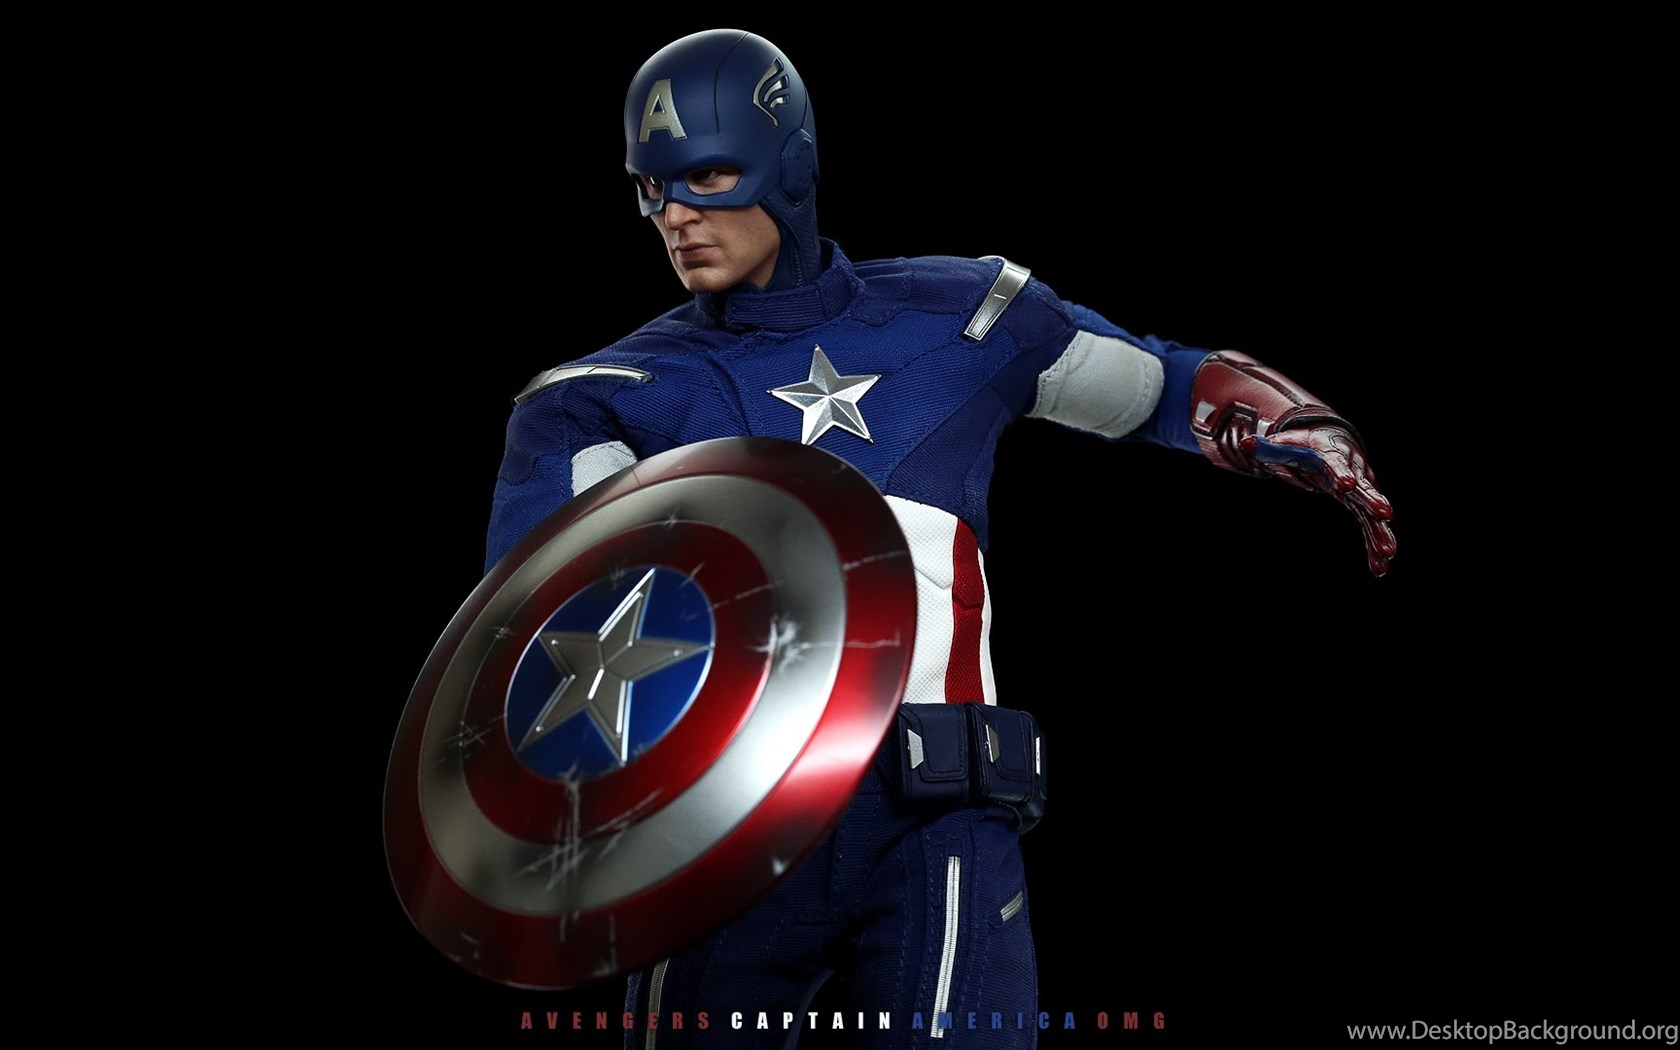 Captain America Avengers Wallpapers For Pc 4347 Hd Wallpapers Site